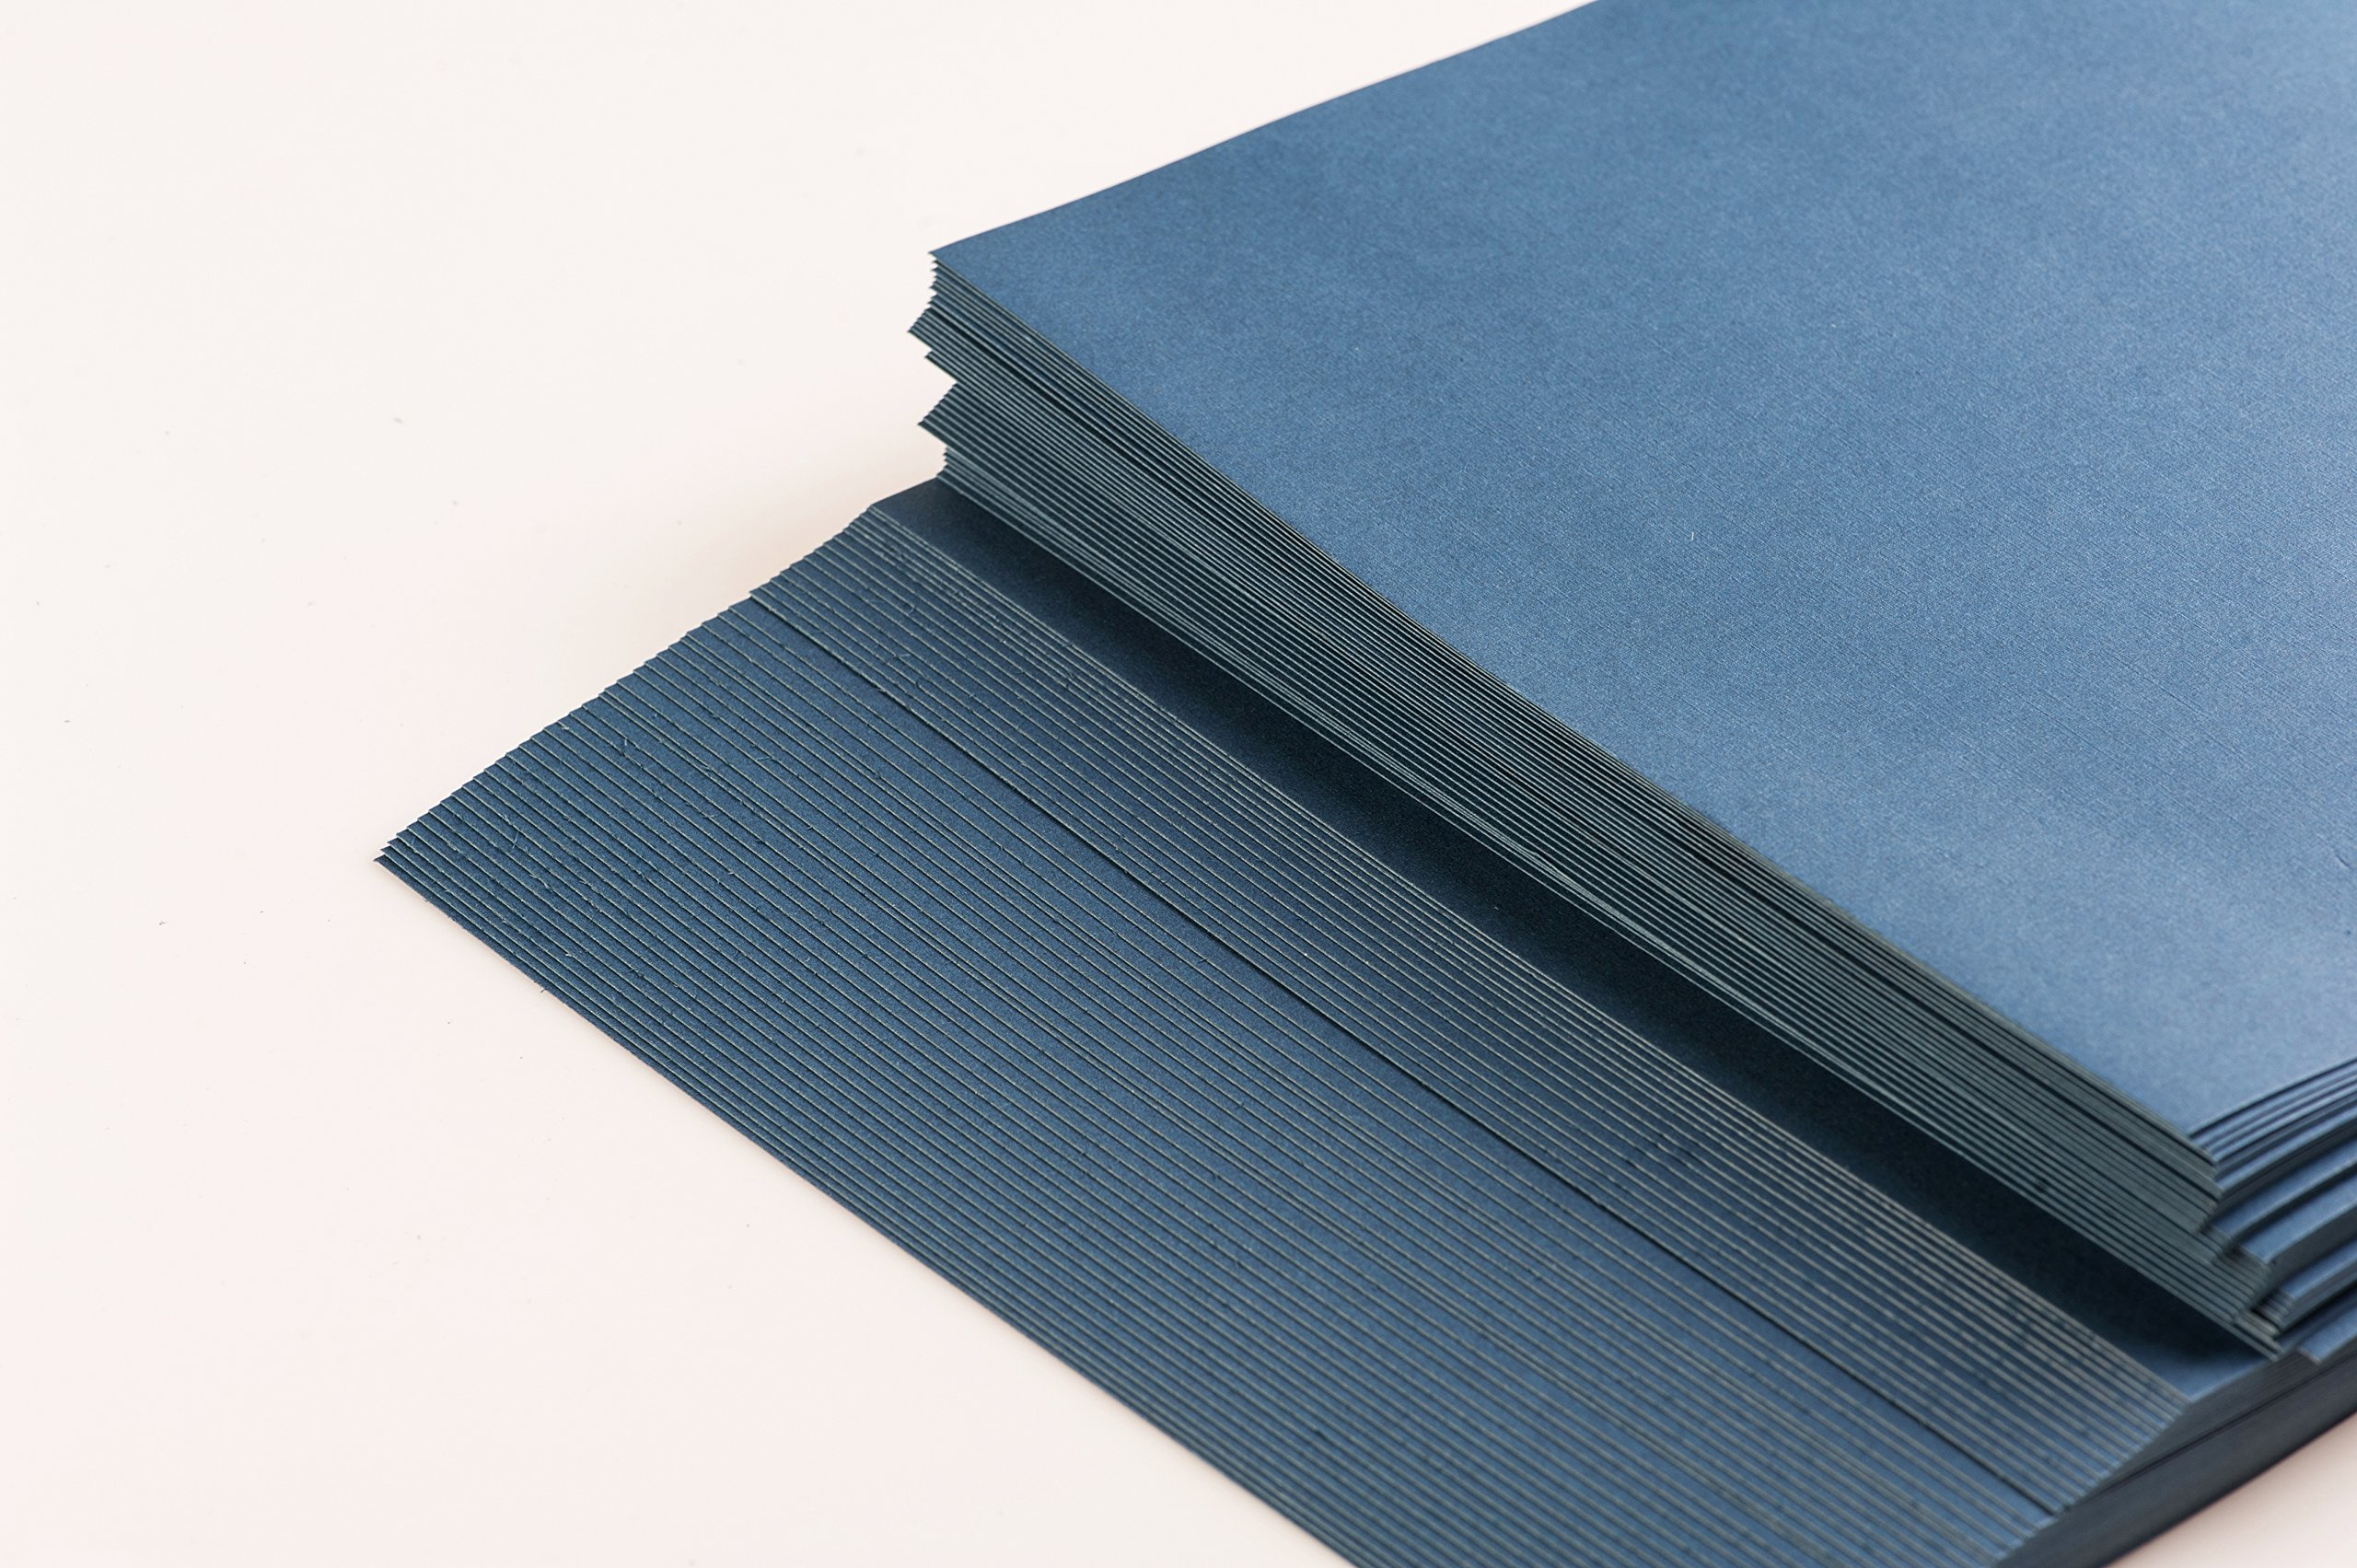 BNC Letter Size Linen Texture Presentation Covers Navy Blue Pack of 100 by BNC Office Supply (Image #5)